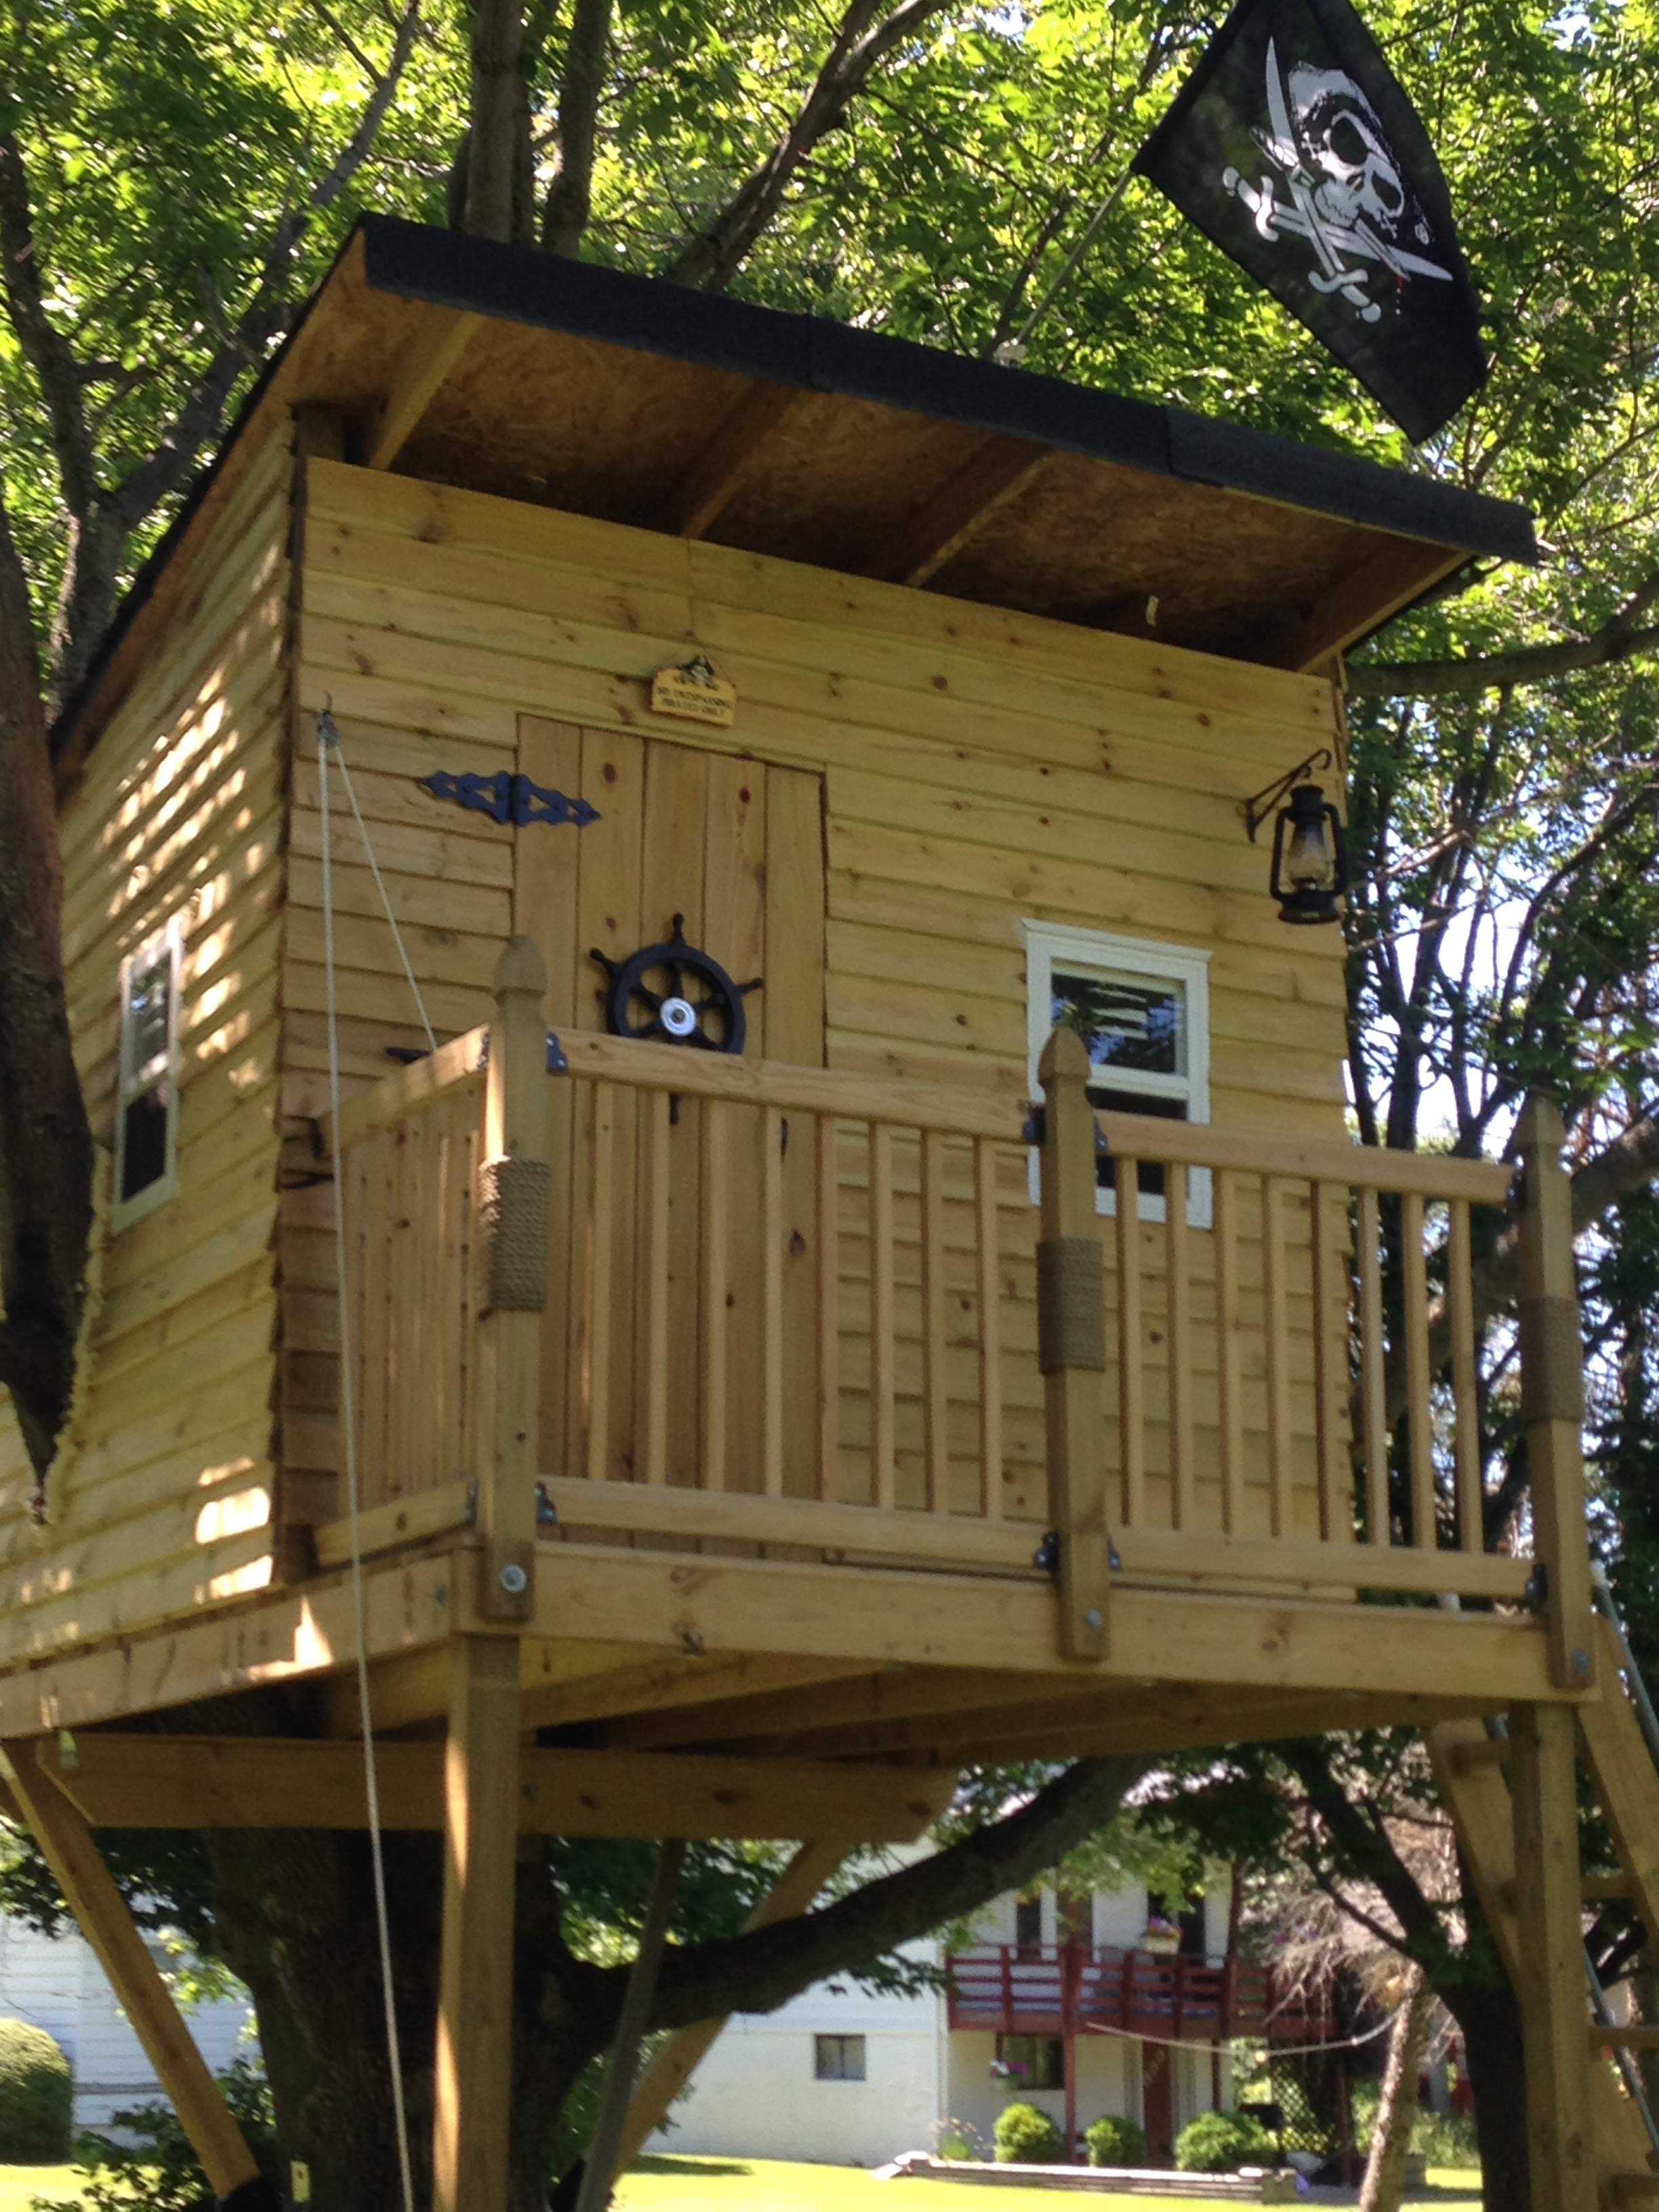 Pirate Hideout Treehouse